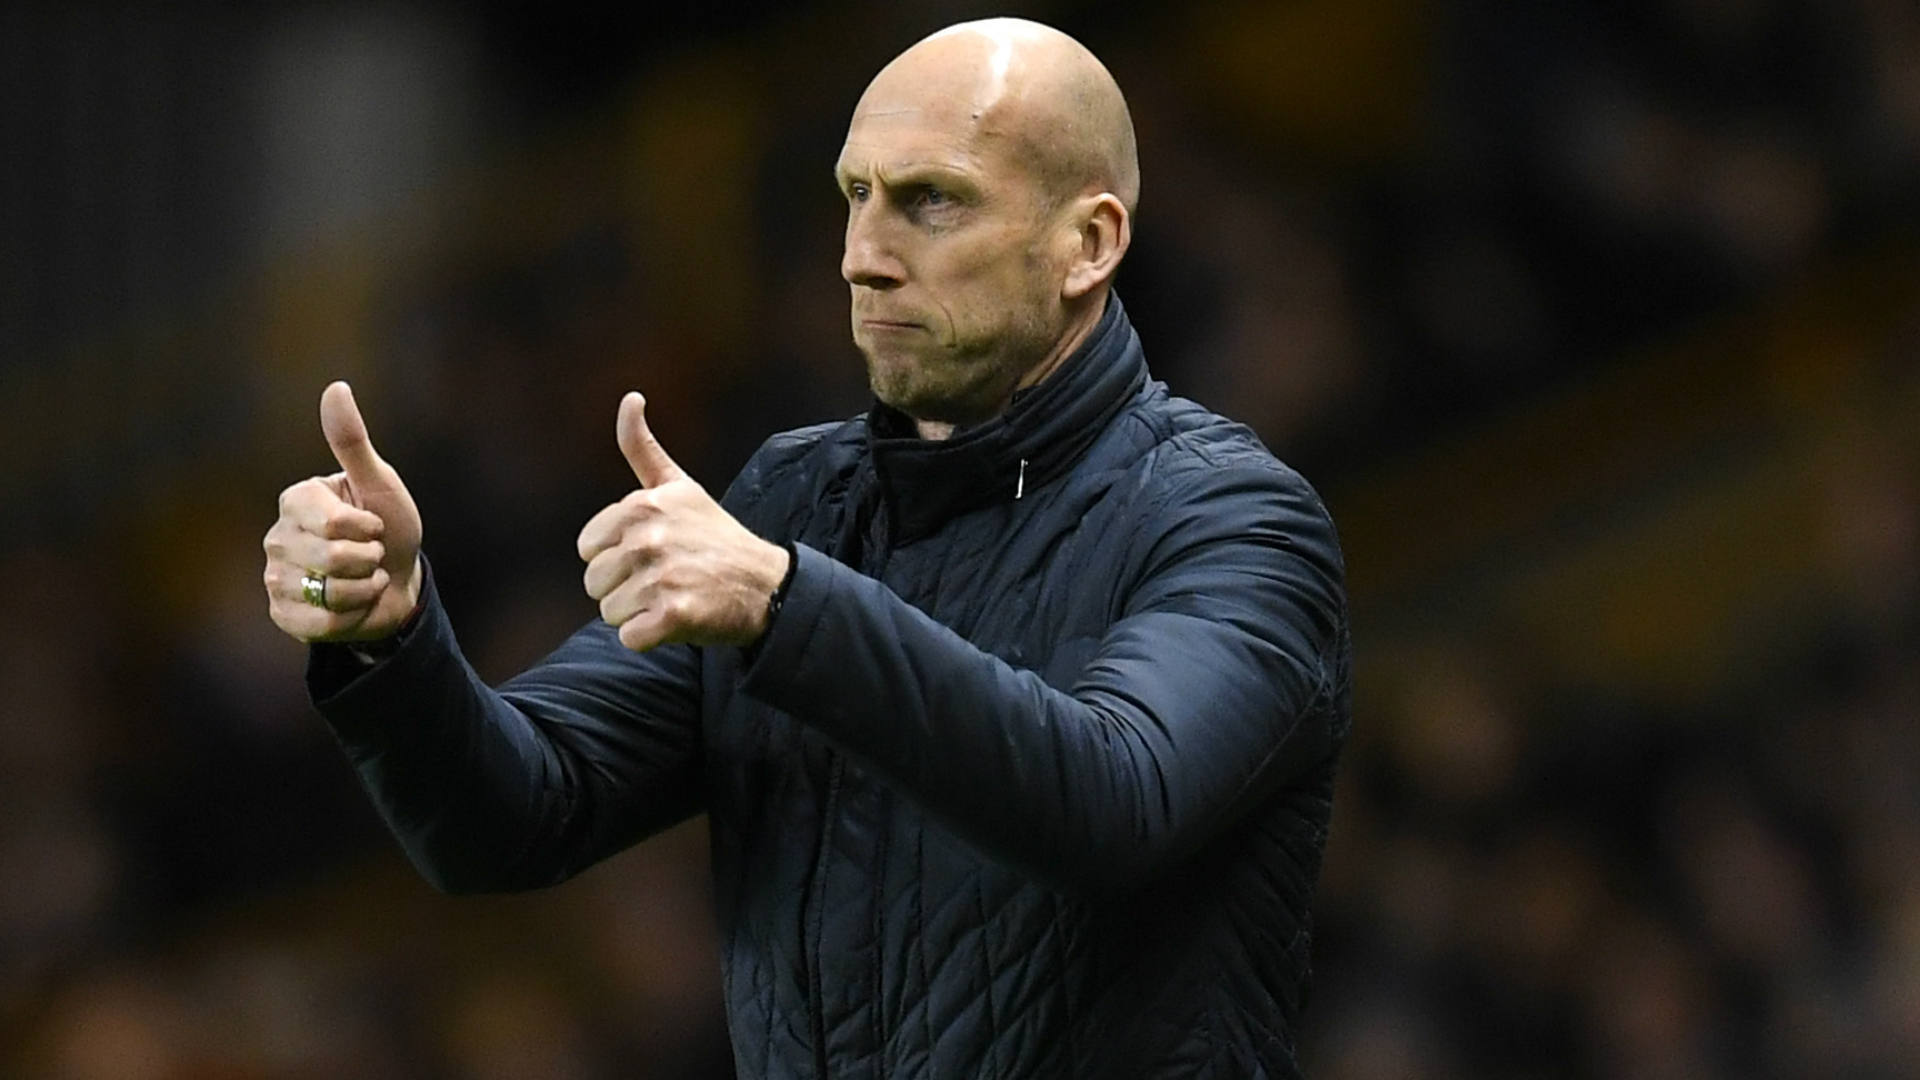 Jaap Stam's excellence as a player won't make him a great coach at FC Cincinnati, but it won't hurt